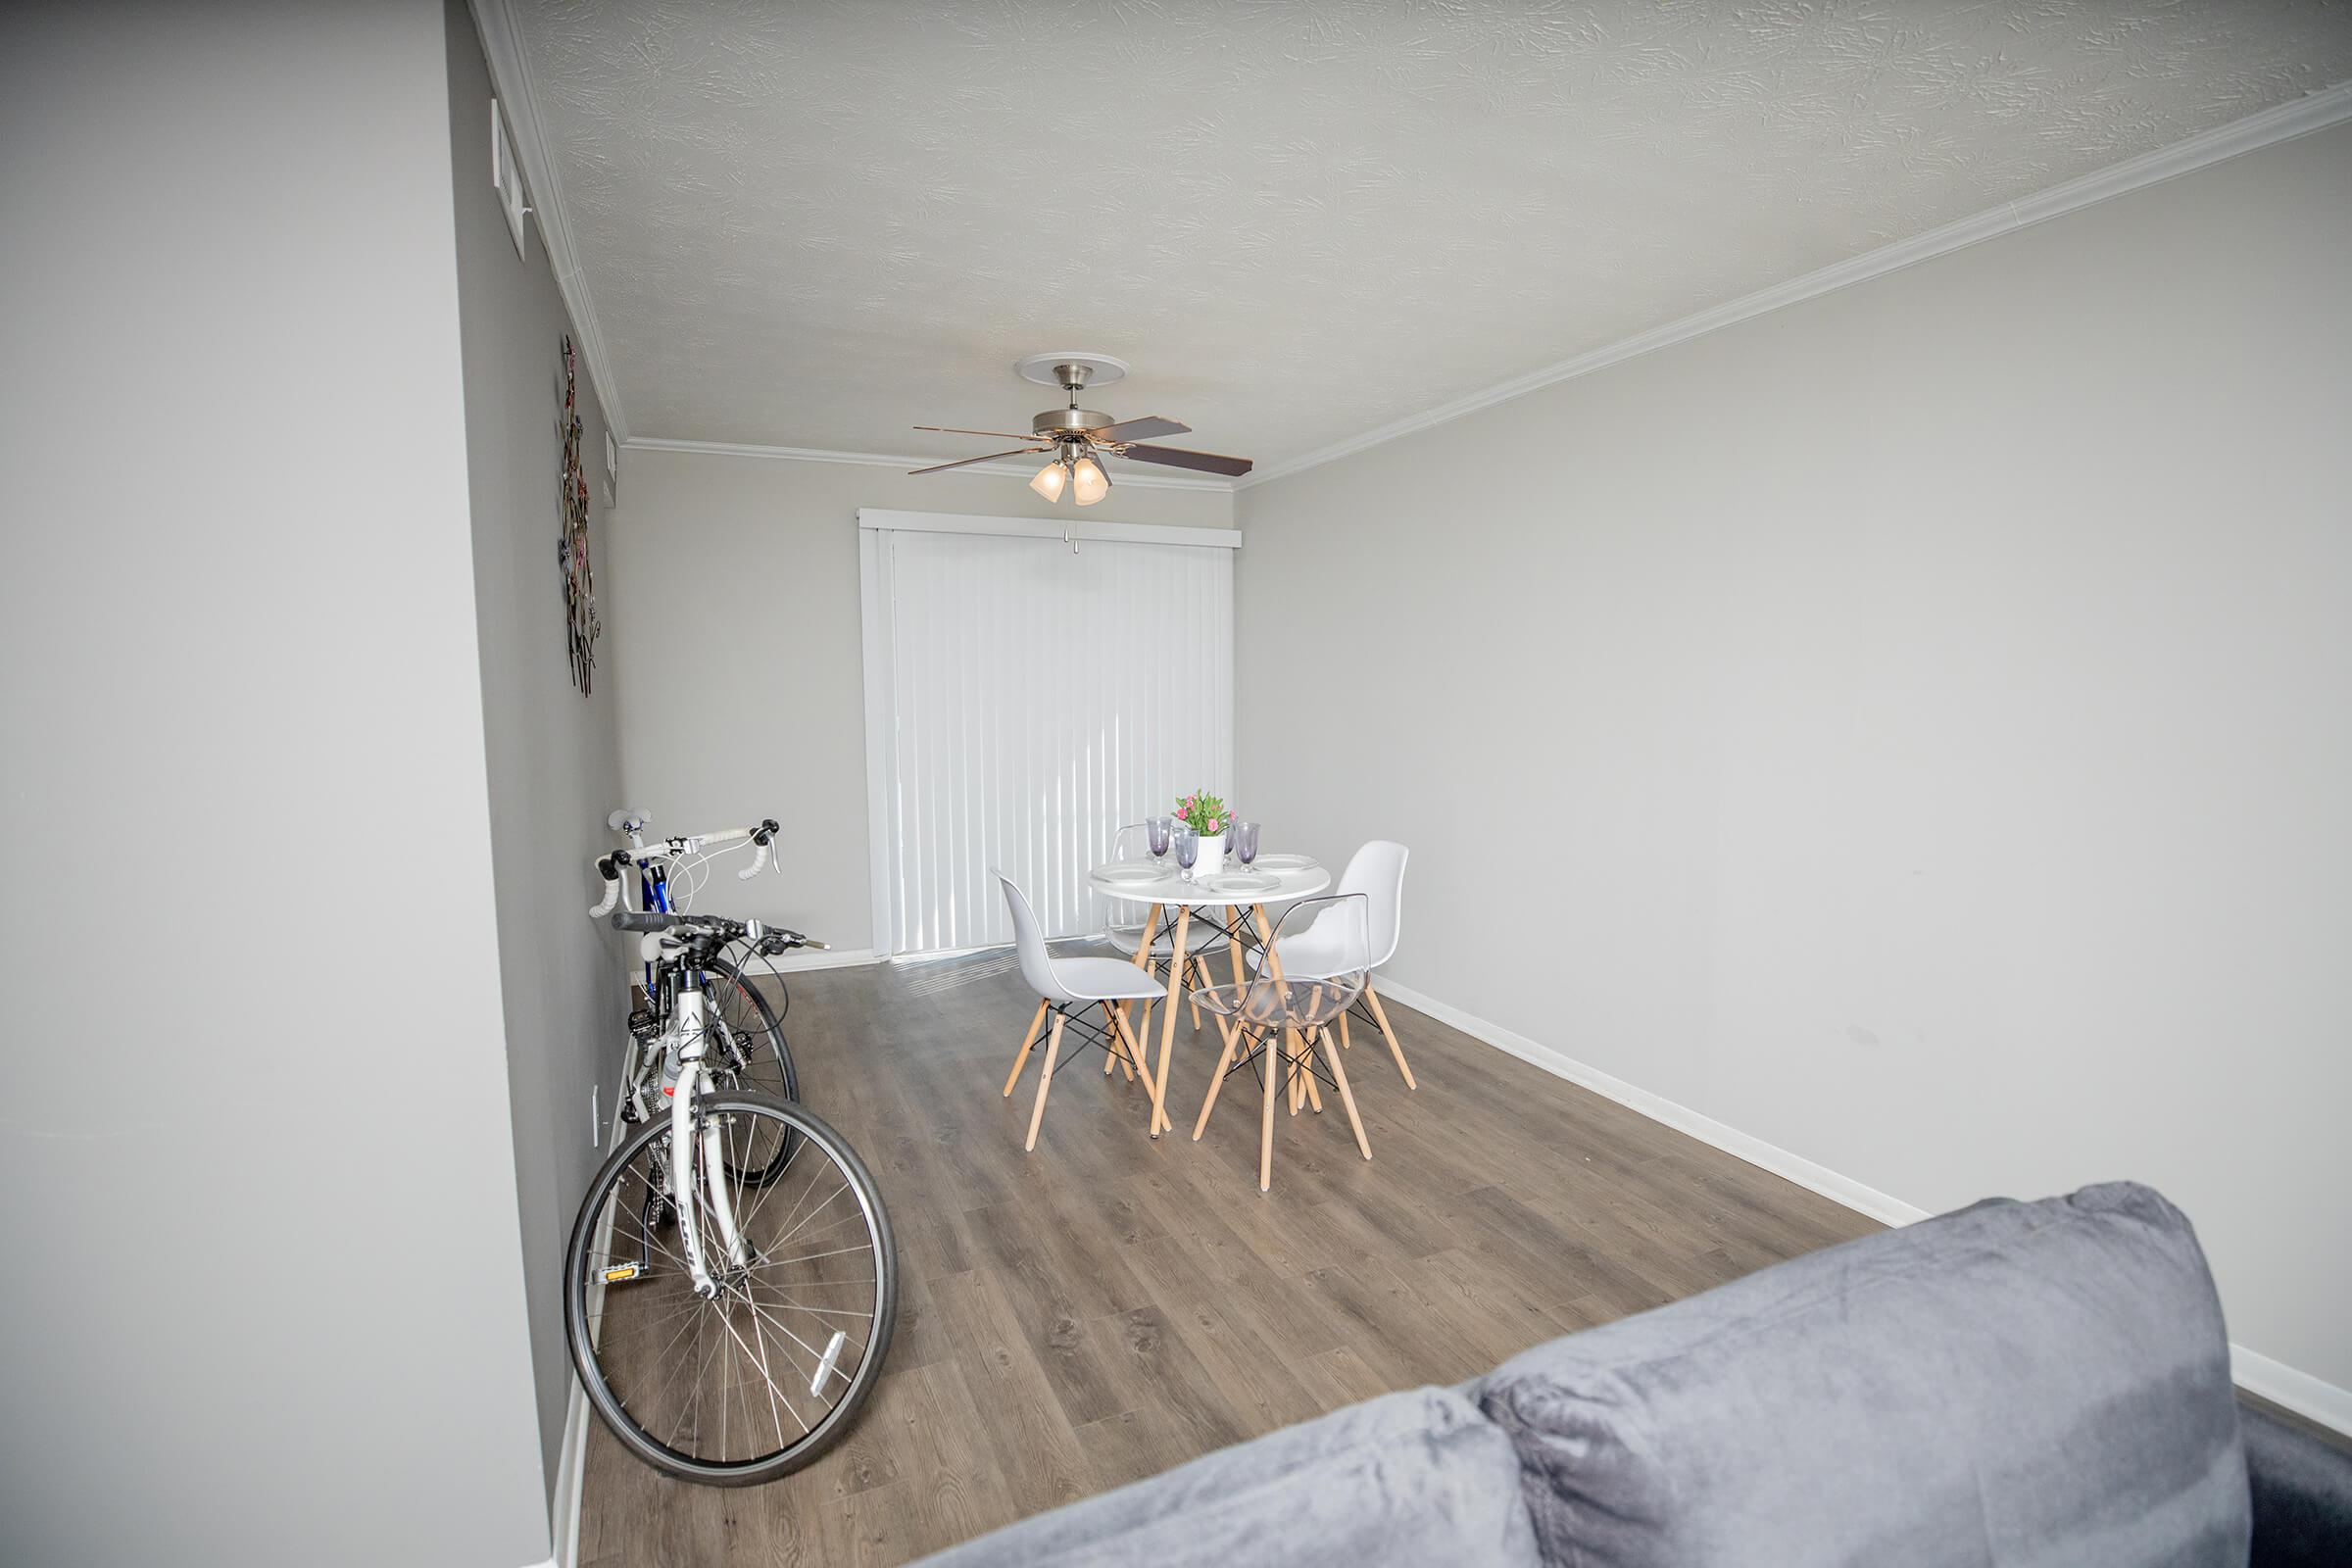 a bicycle in a room